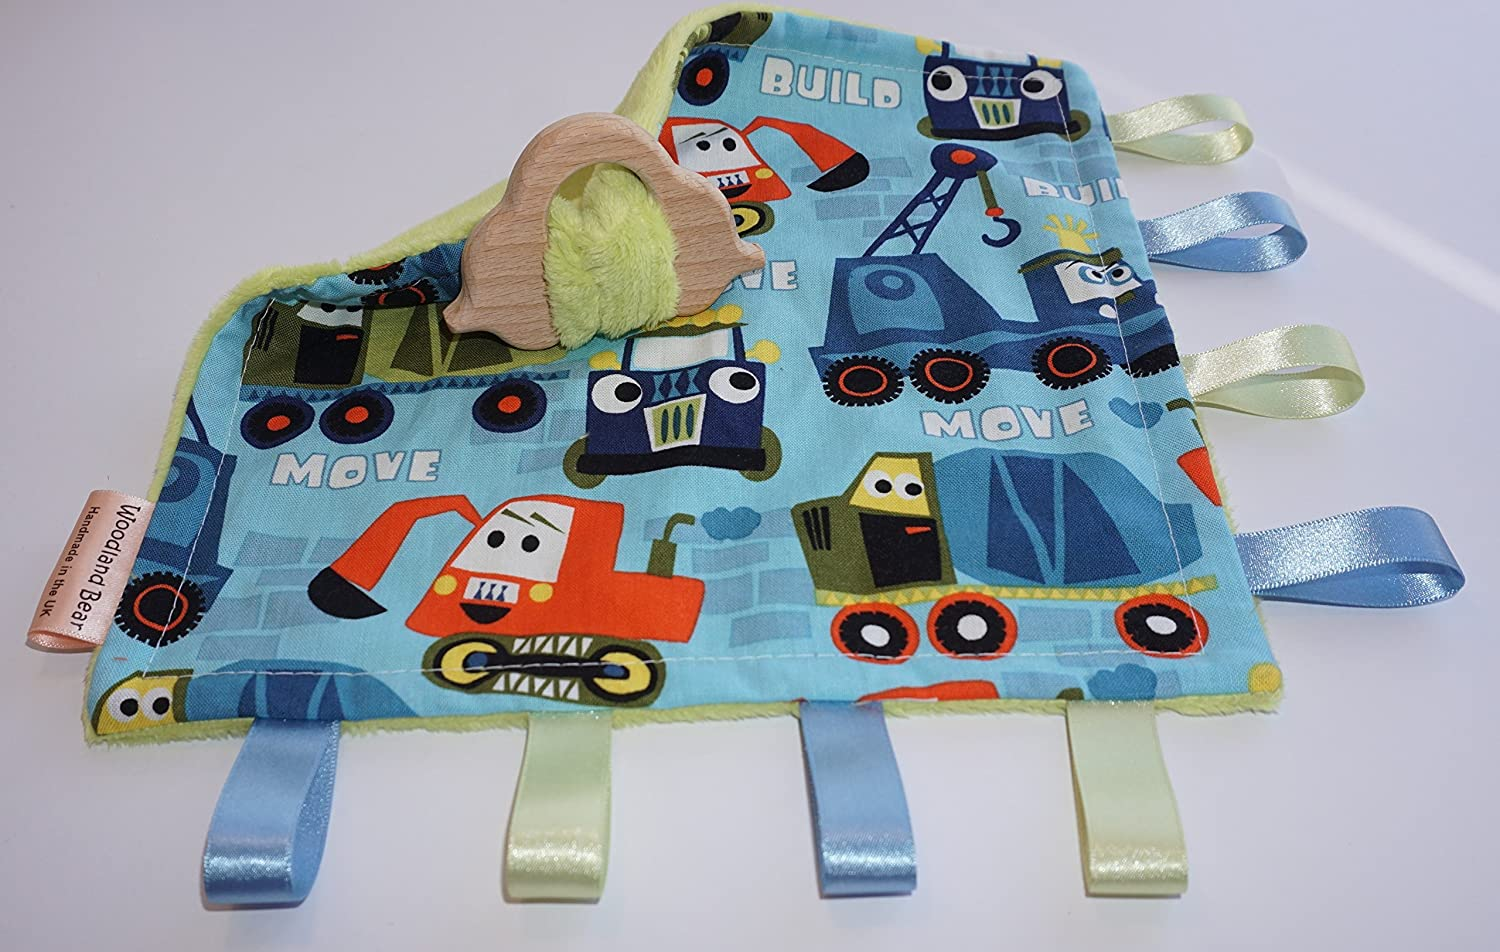 Teething baby blanket comforter - Trucks - organic wooden teething car - CE certified from birth